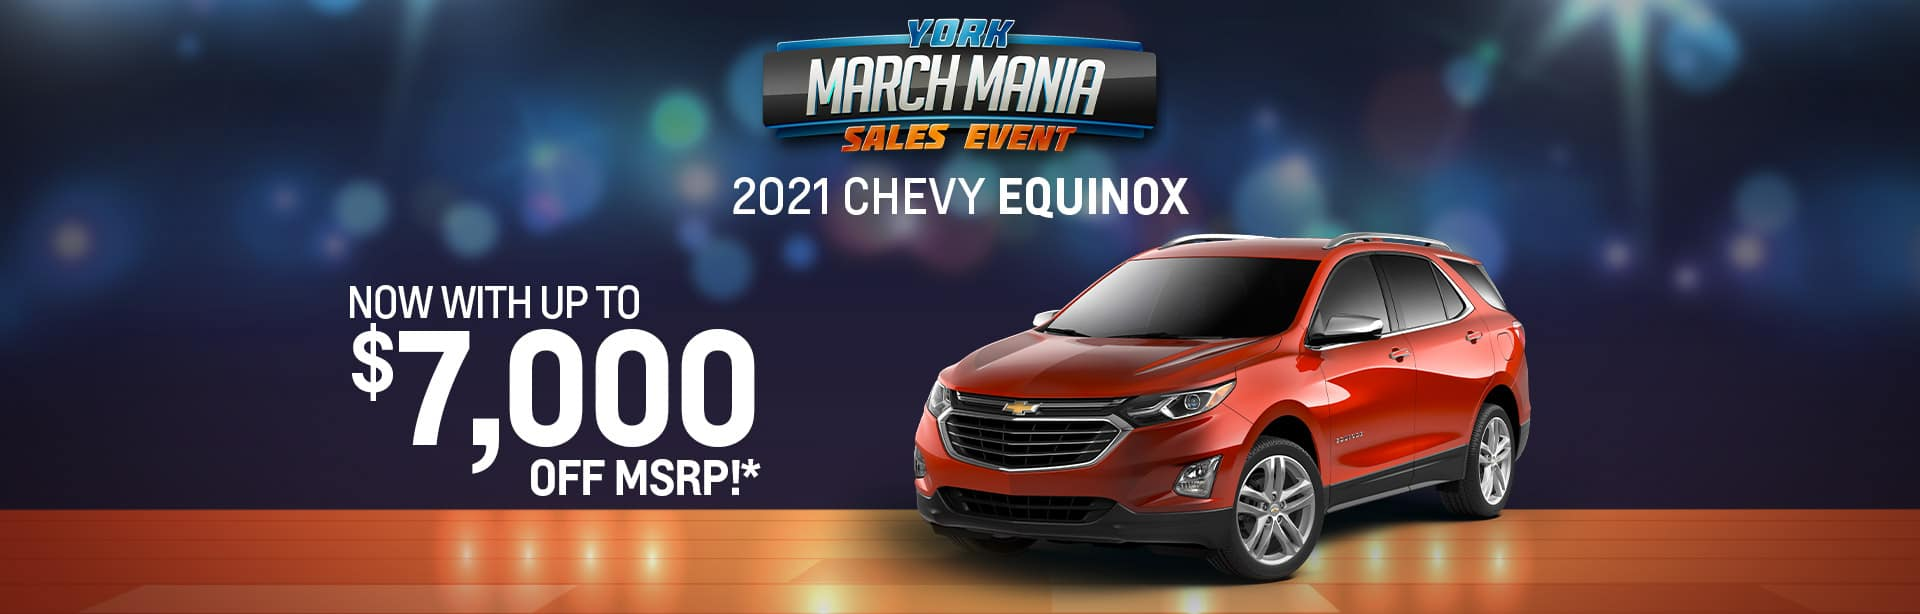 Best rebate offer on a new 2021 Chevy Equinox near Indianapolis IN